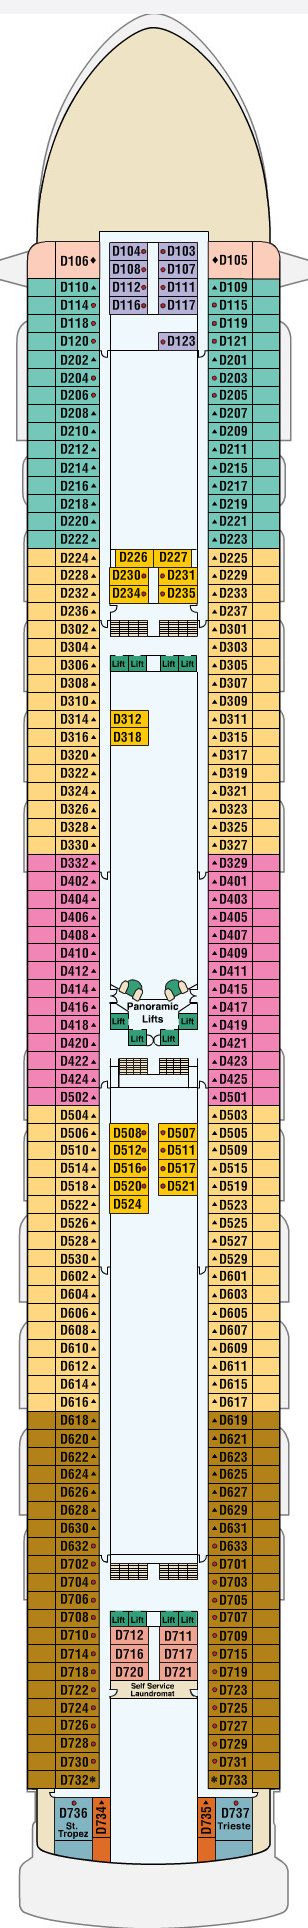 Star Princess Dolphin Deck 9 layout